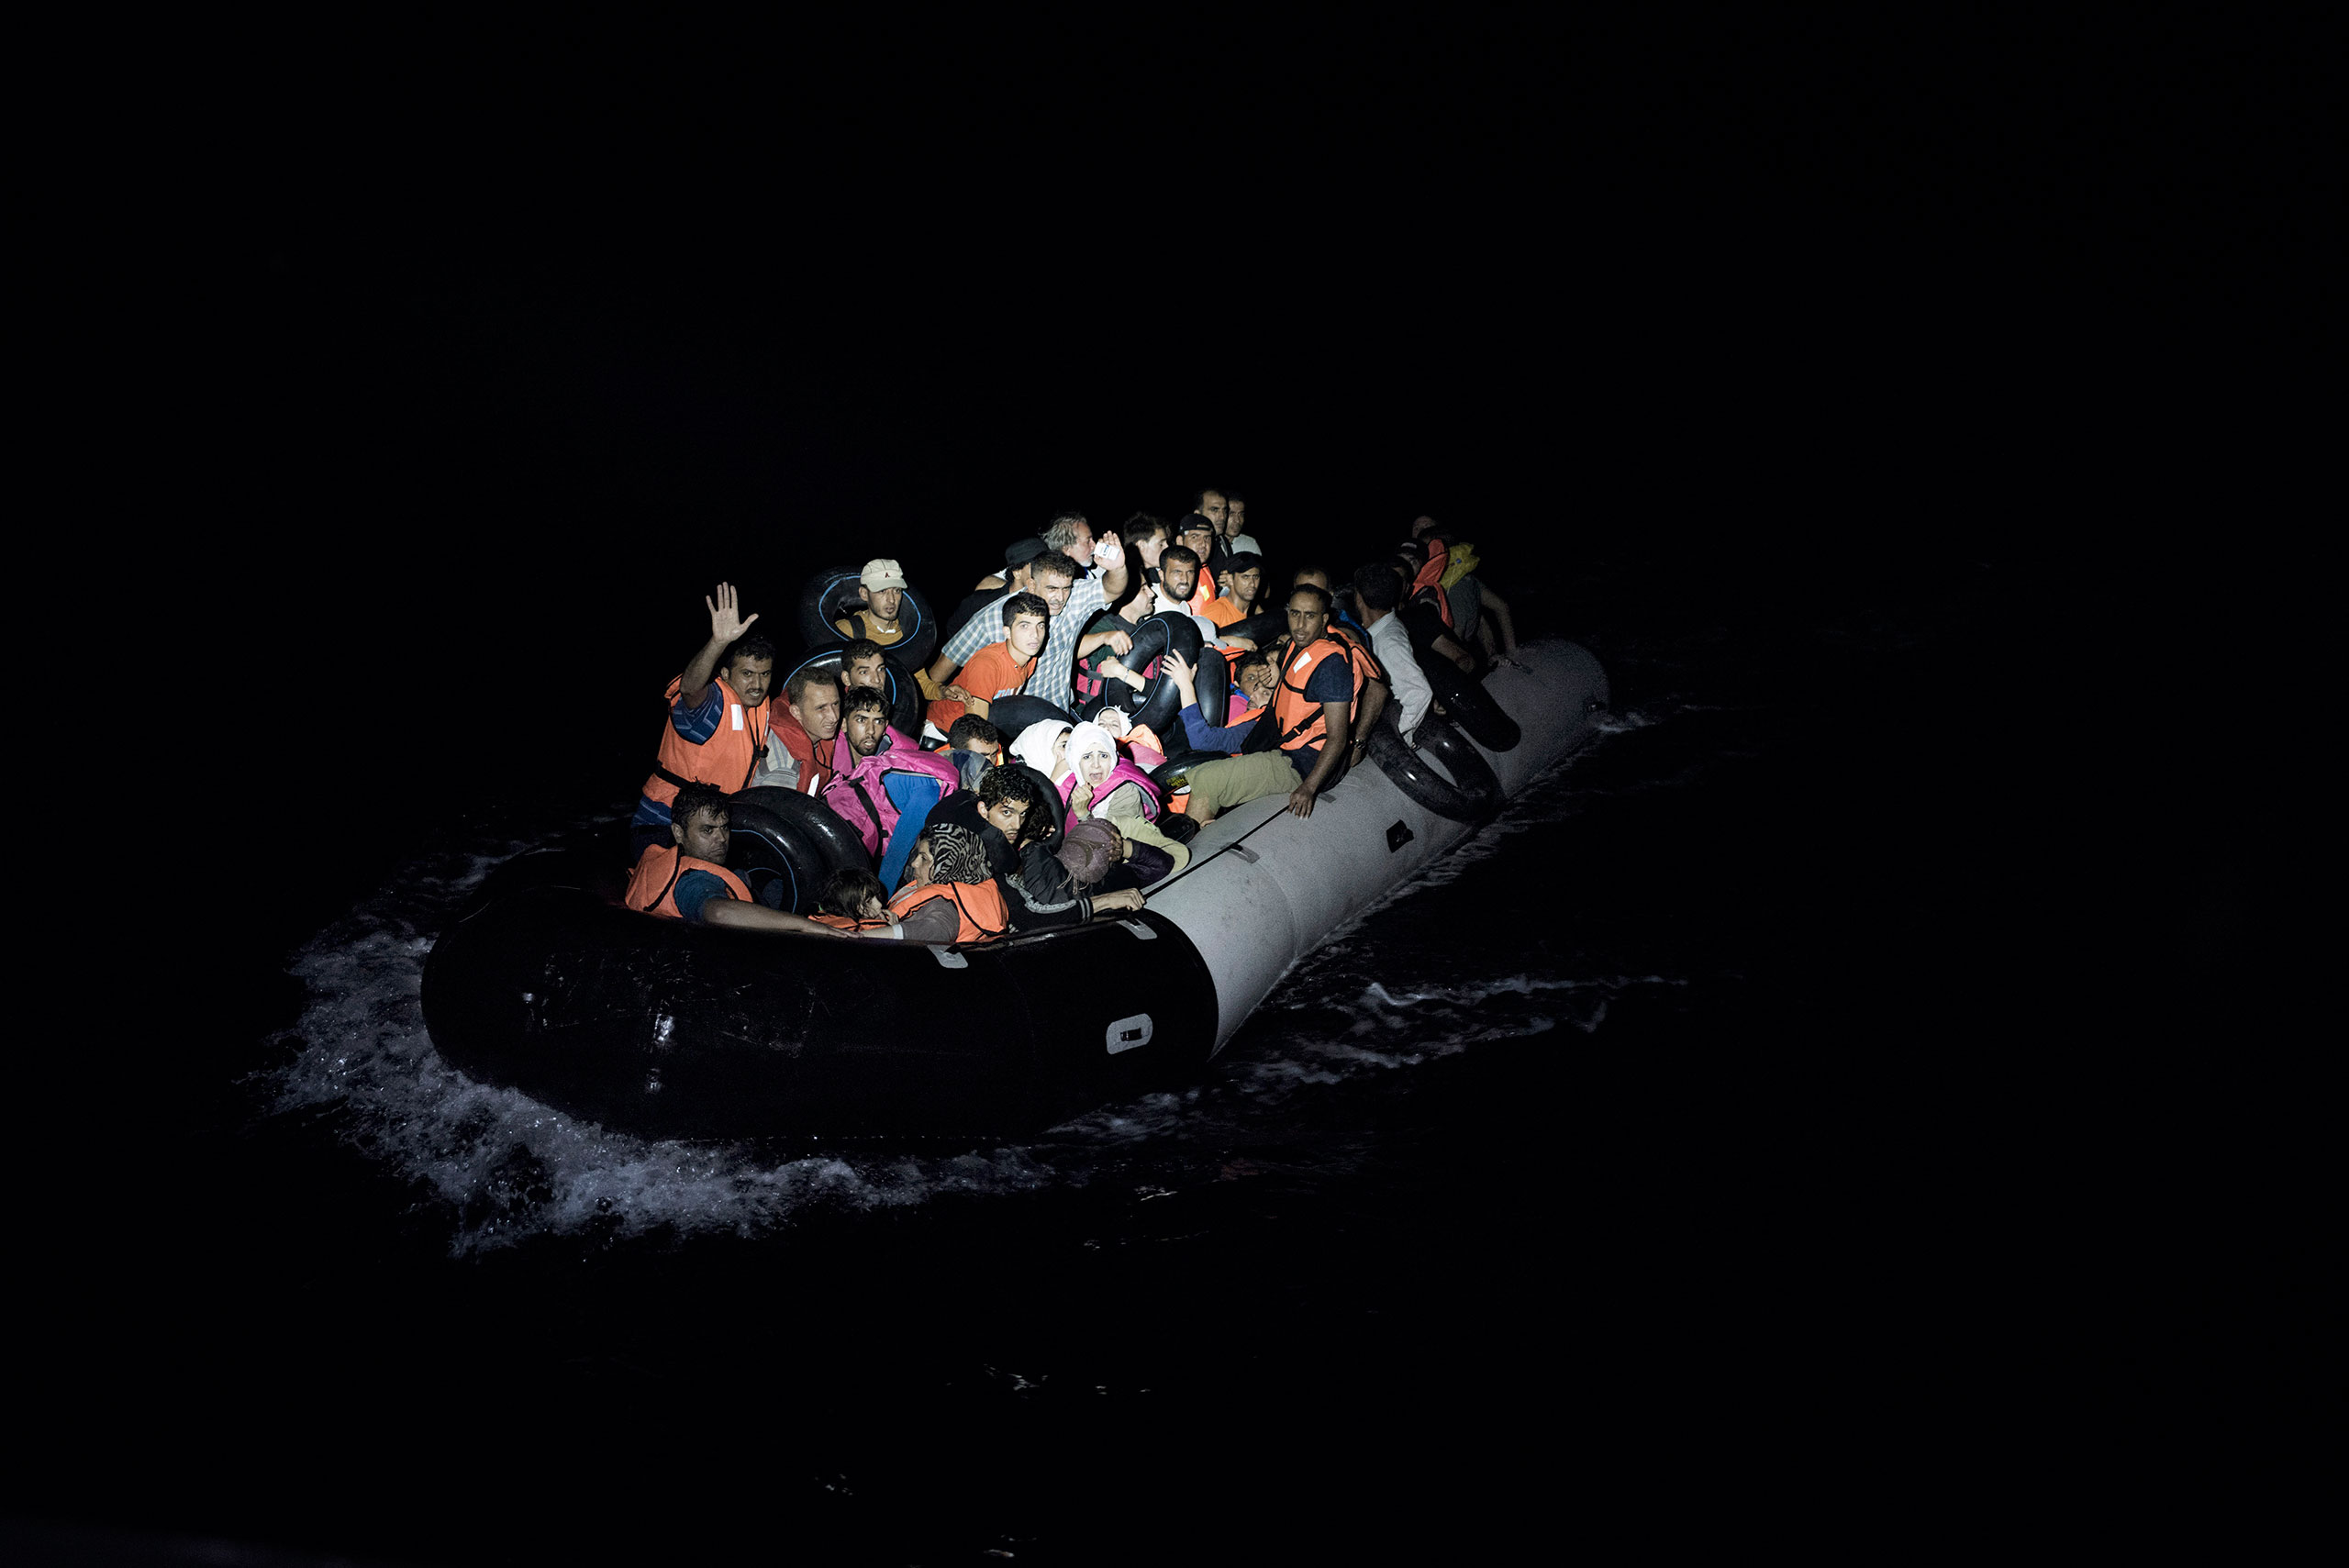 A boat full of migrants is illuminated by the flashlights of Greek coast guards who have come to rescue them from the waters near the Greek-Turkish border. Sept. 6, 2015.From  One Night on Migrant Patrol With the Greek Coast Guard